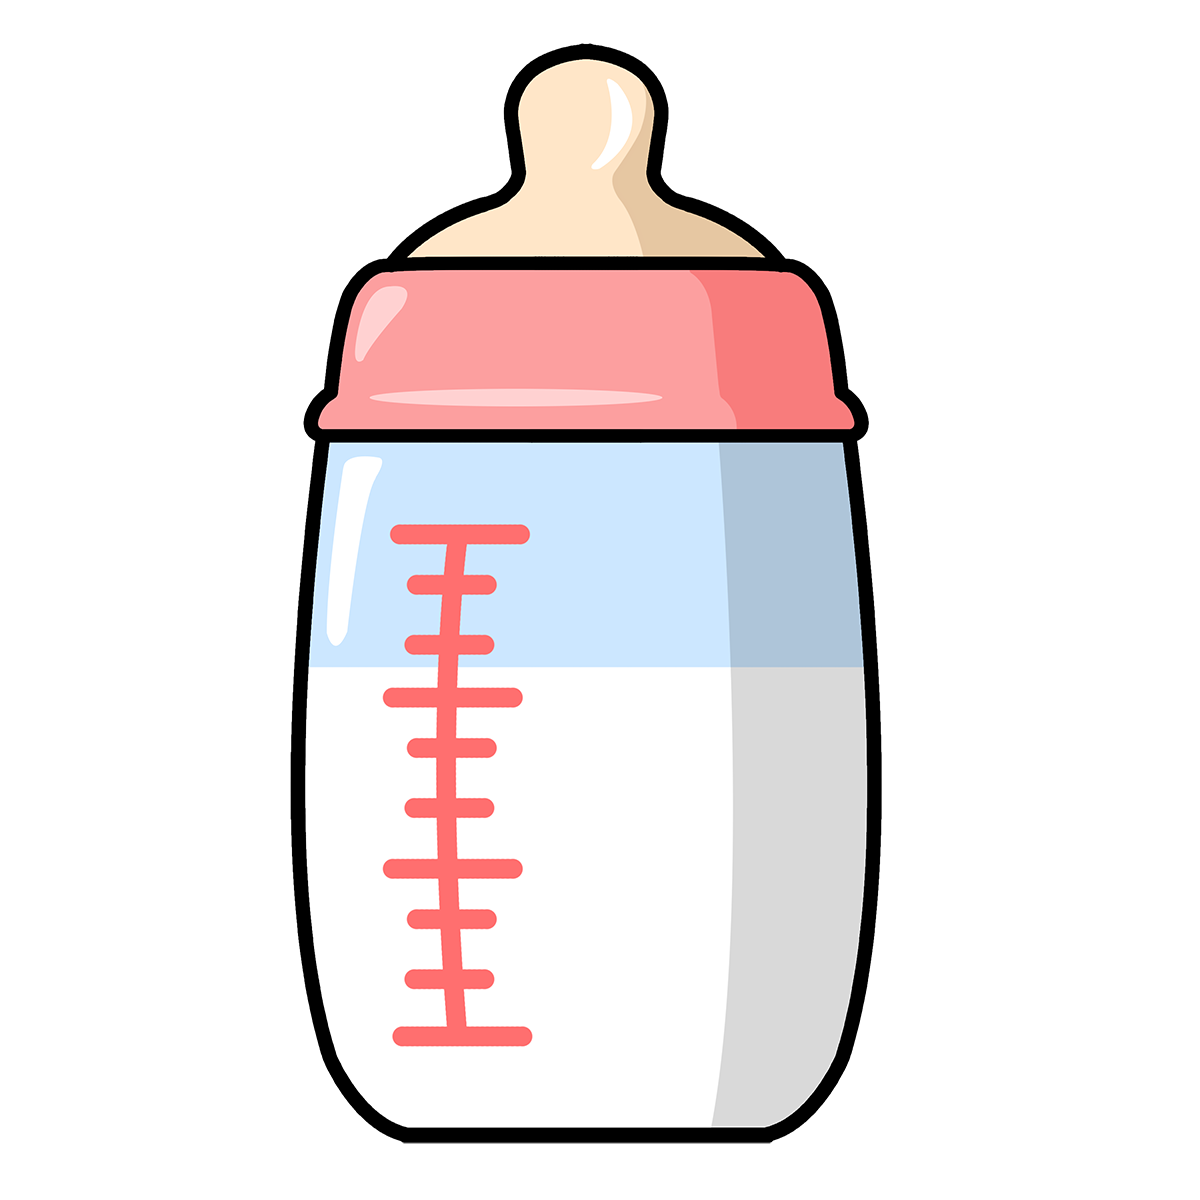 1940 s baby stuff clipart Transparent pictures on F.